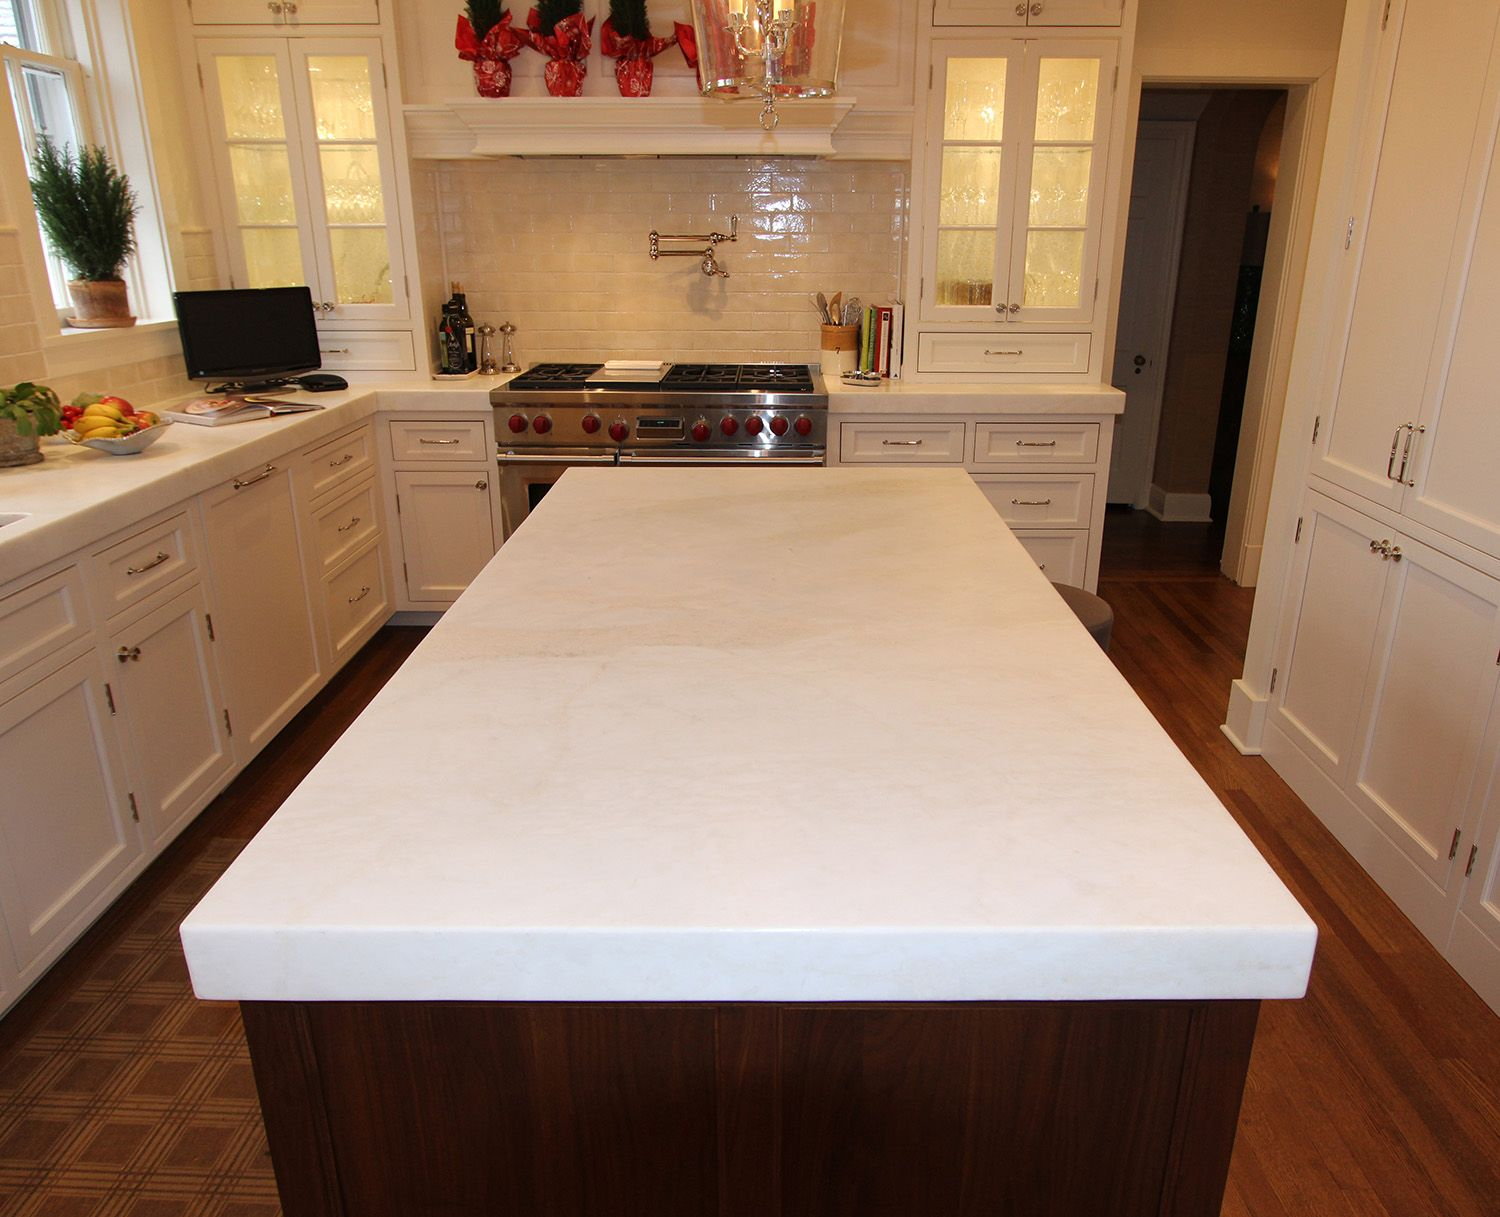 Kitchen Counter Light Kitchen Island Countertop With Light Colored Granite